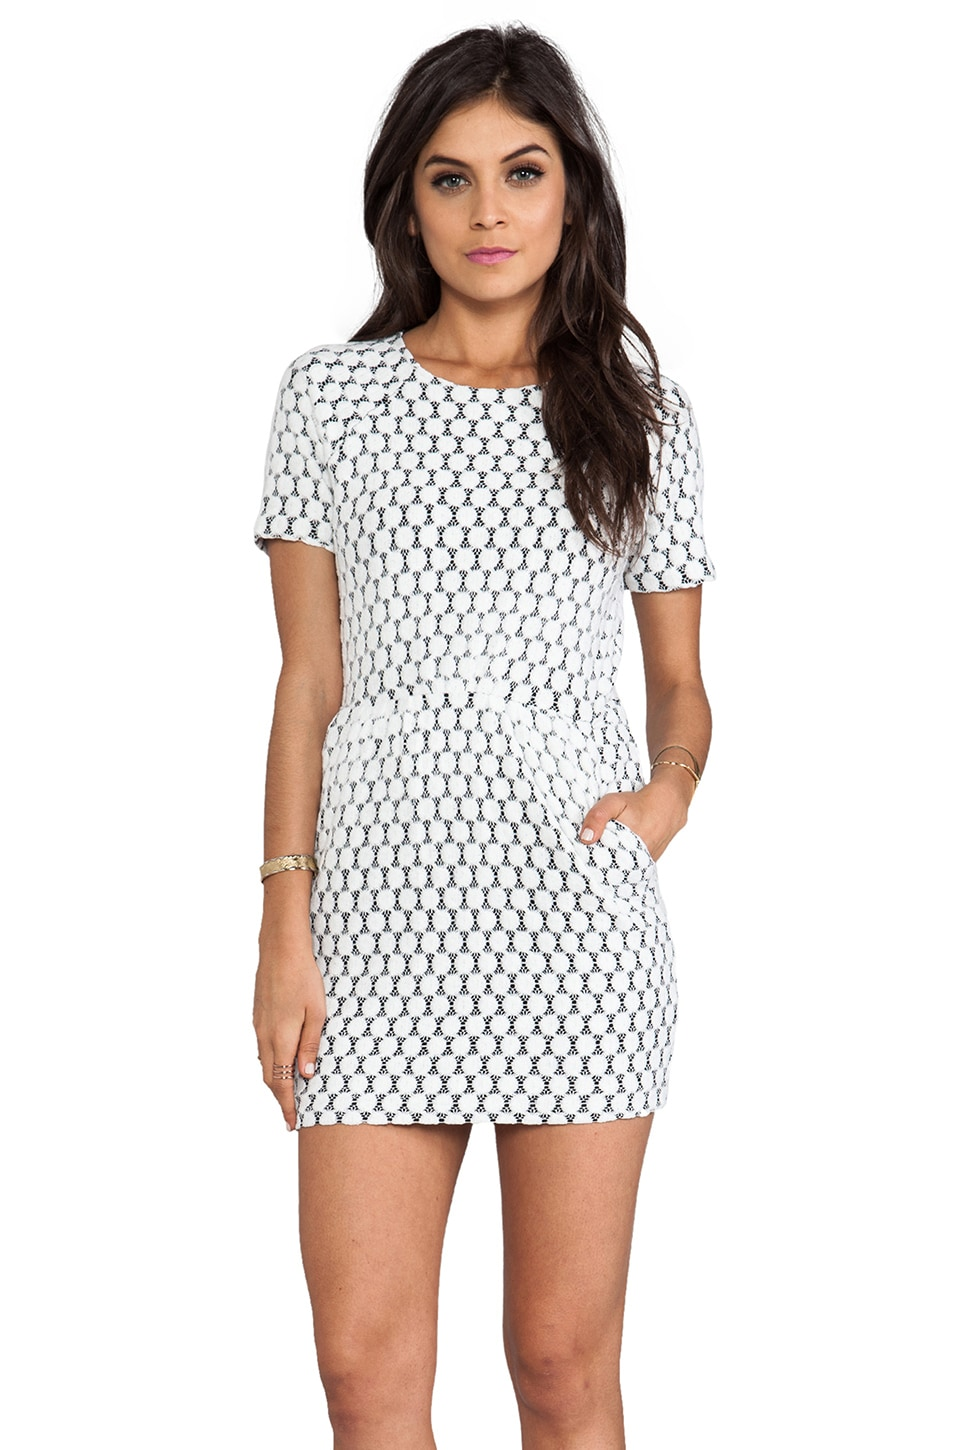 Dolce Vita Ritsa Dot Zebra Lace Dress in White Dot